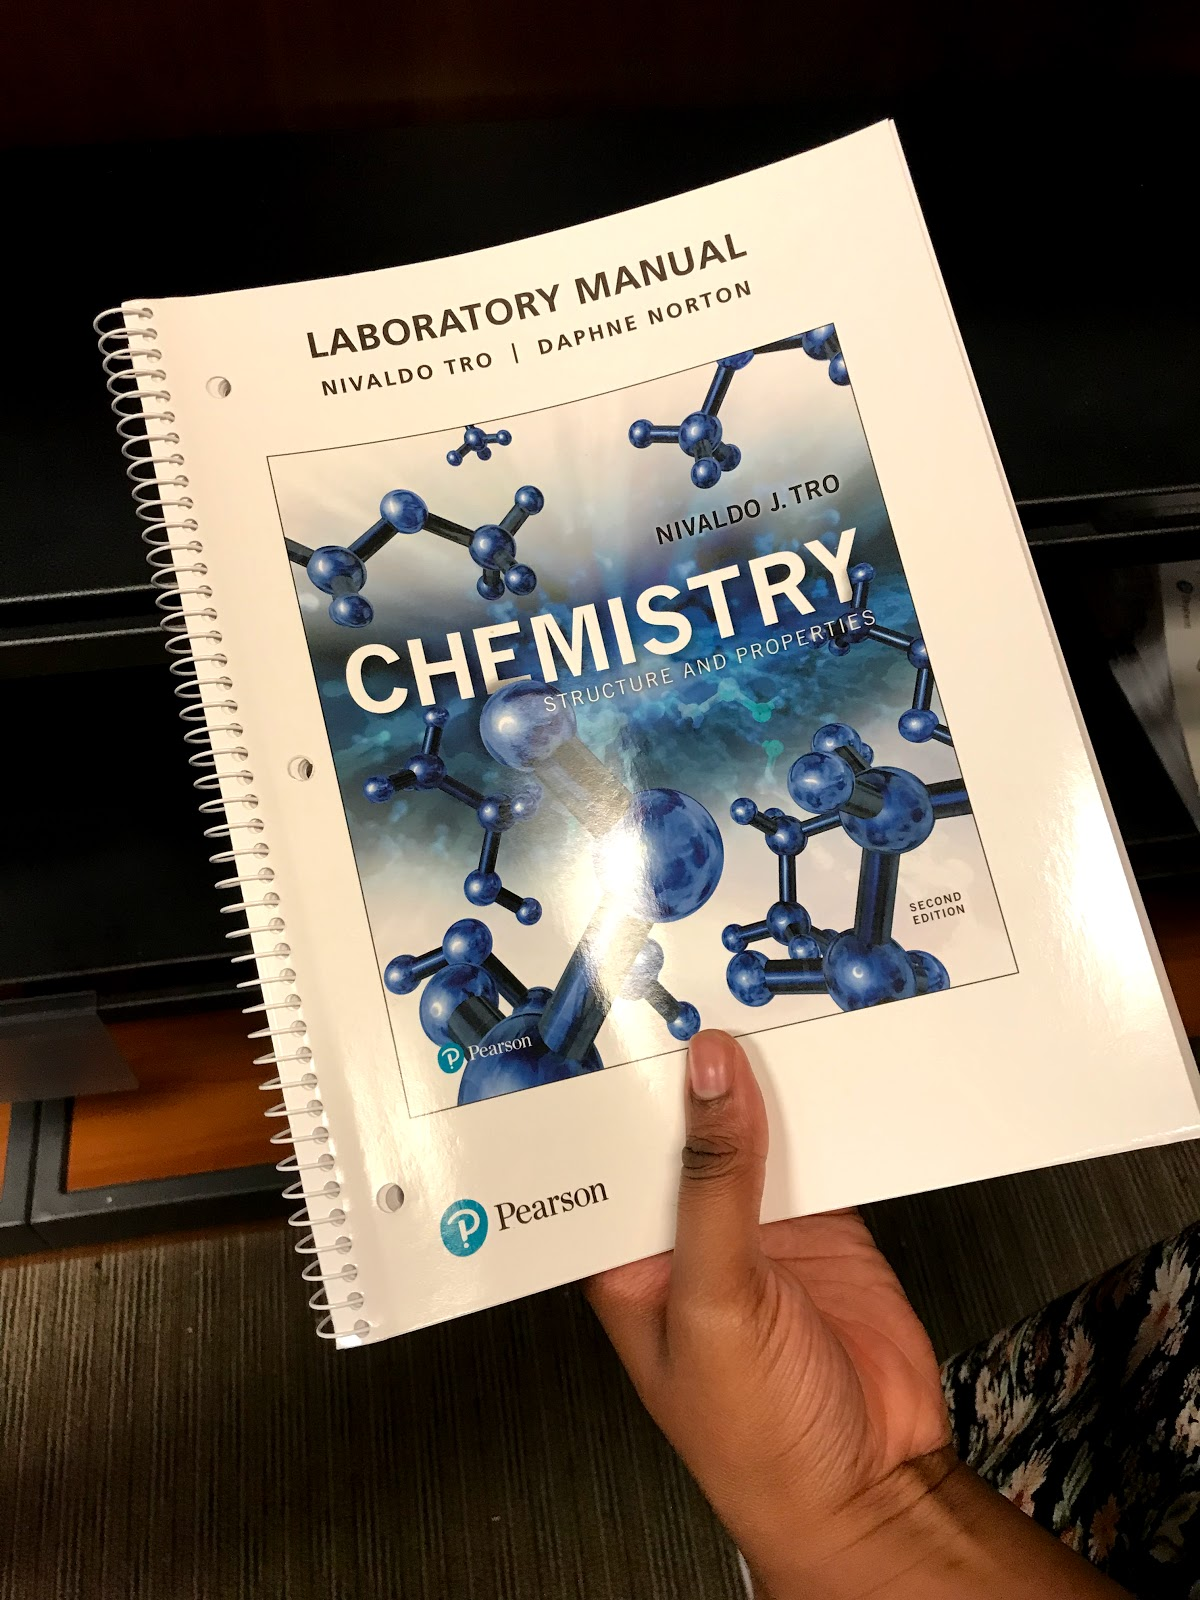 Image: Chemistry book at school bookstore